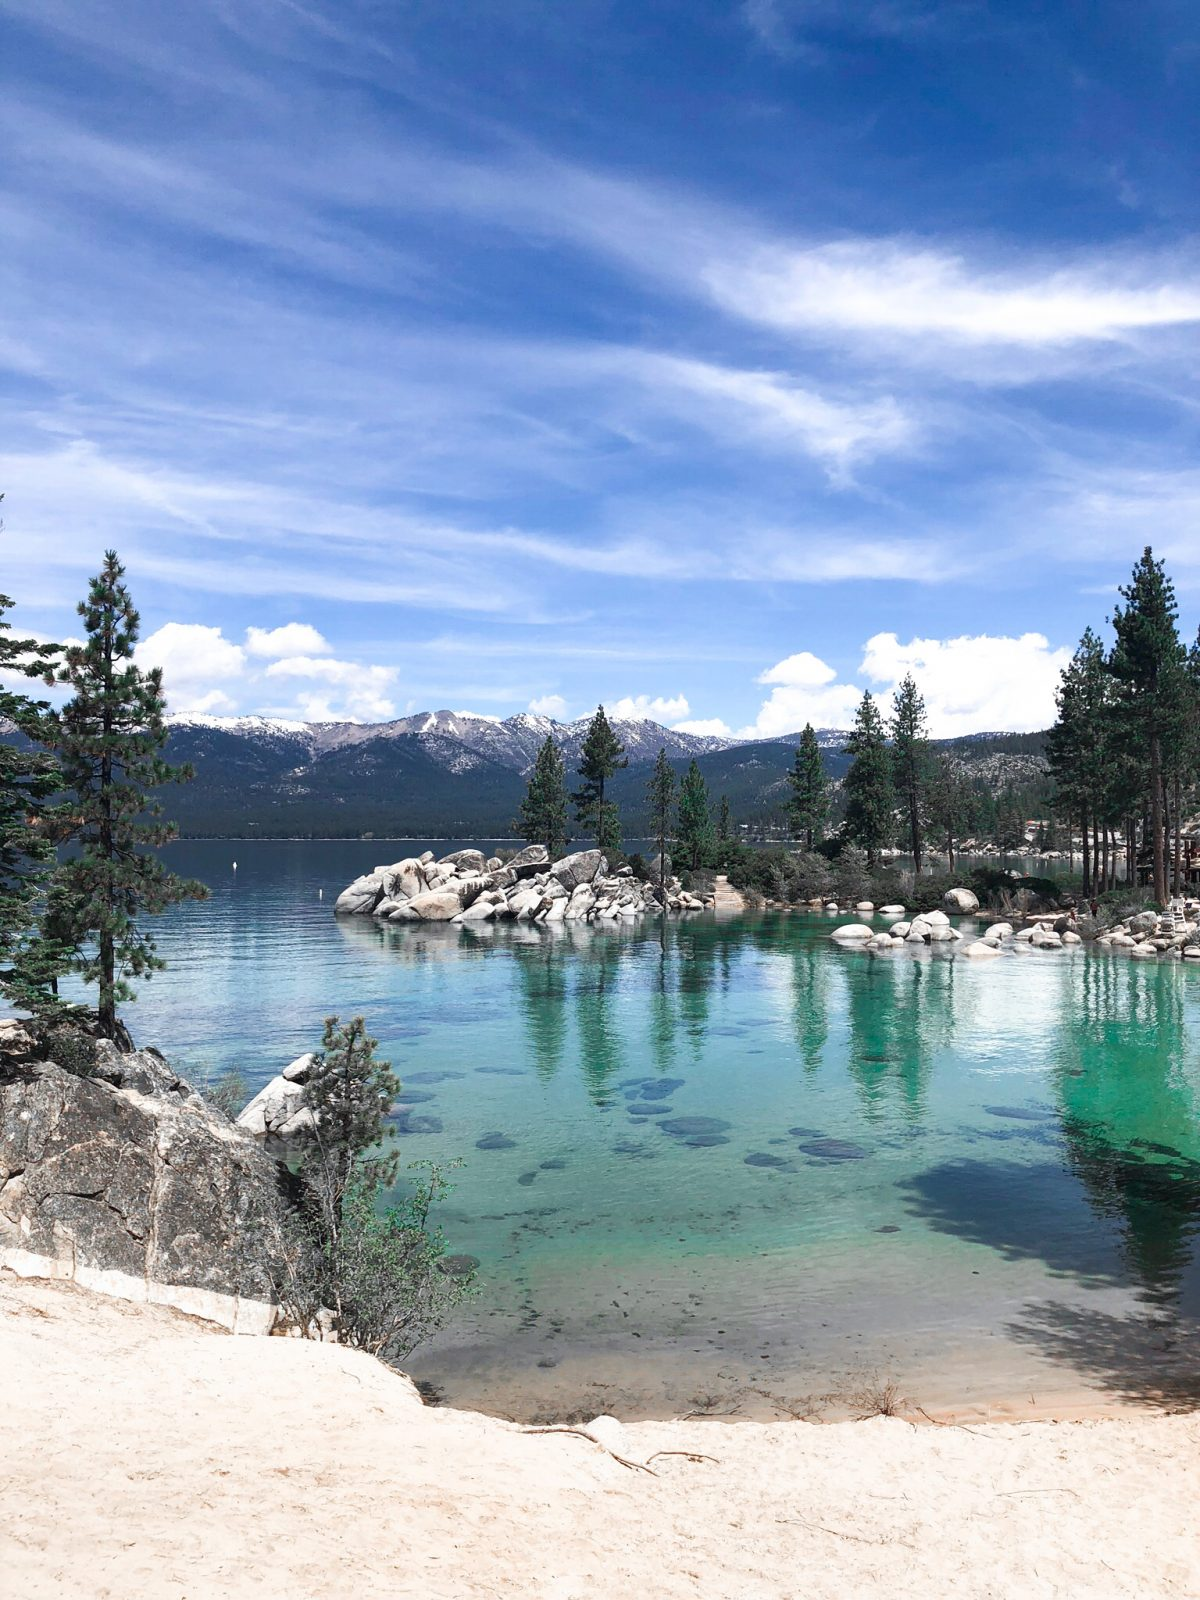 South lake tahoe, what to do in lake tahoe, girls trip ideas, unique trip ideas, group trip ideas, outdoor activities in lake tahoe, horseback riding in lake tahoe